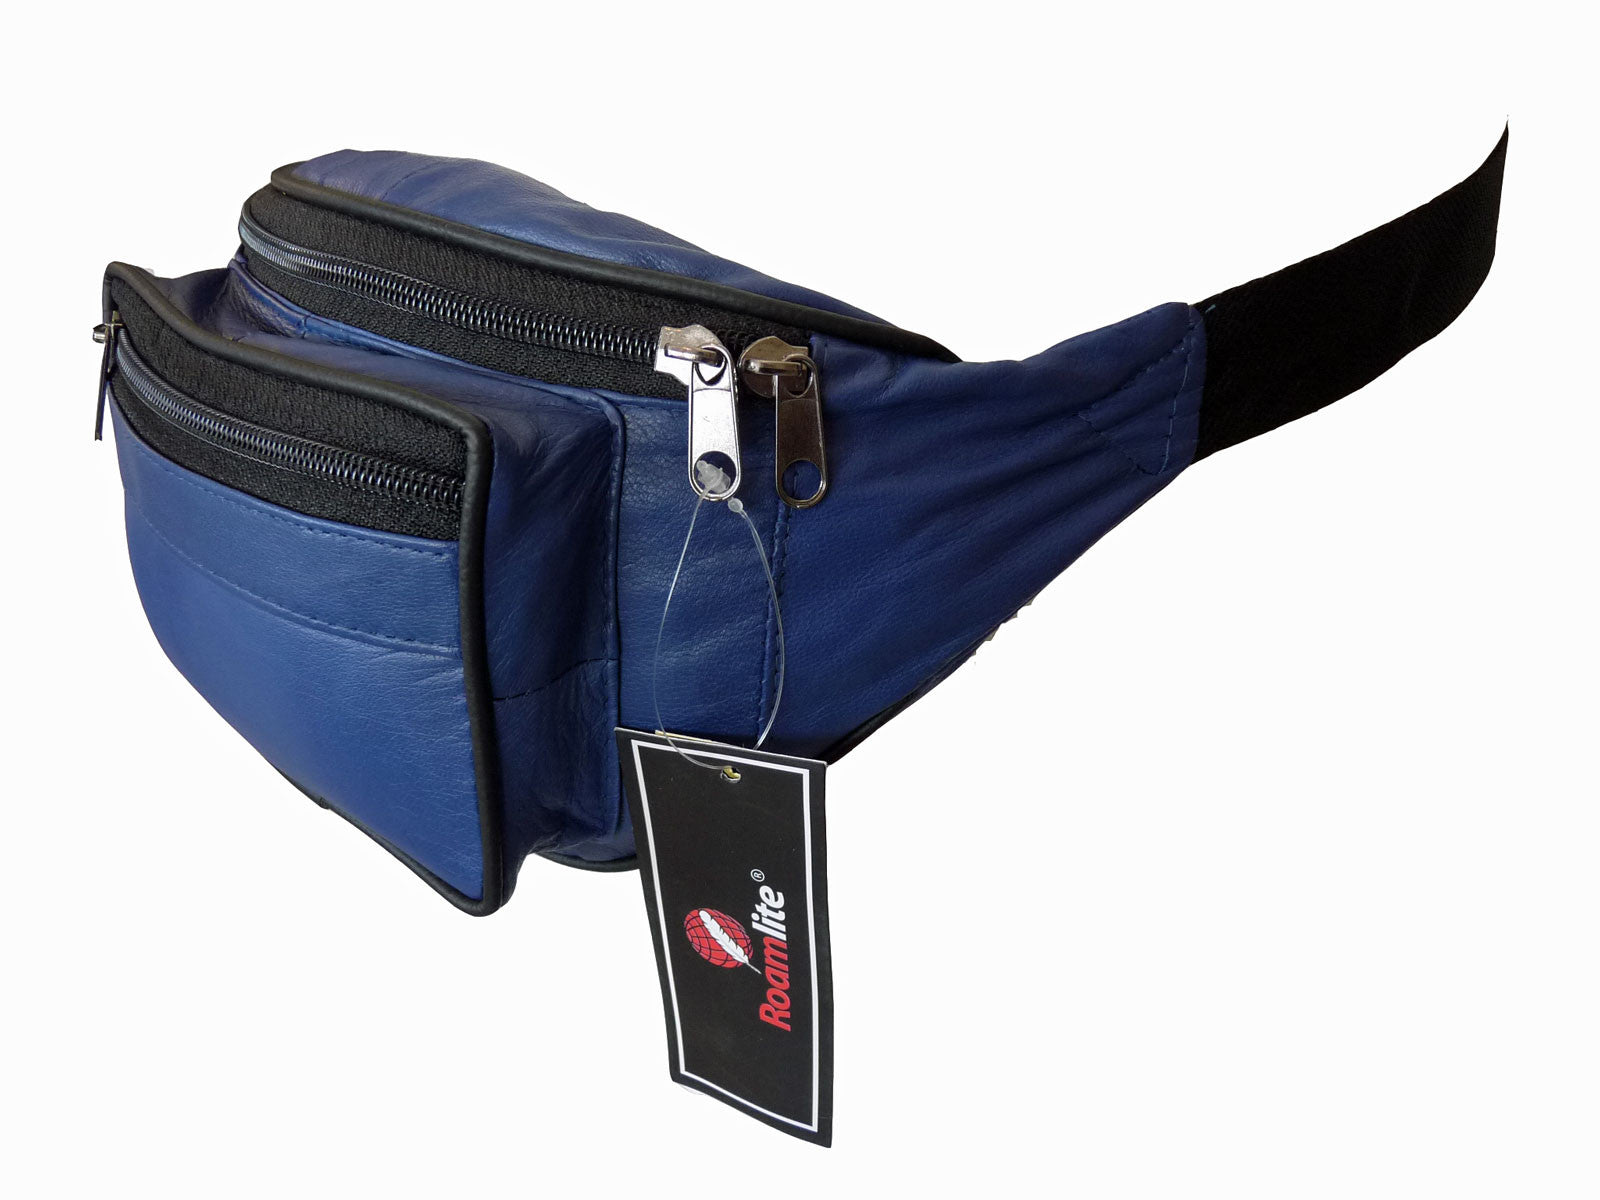 Leather Bumbag RL700NB Navy Blue Side View